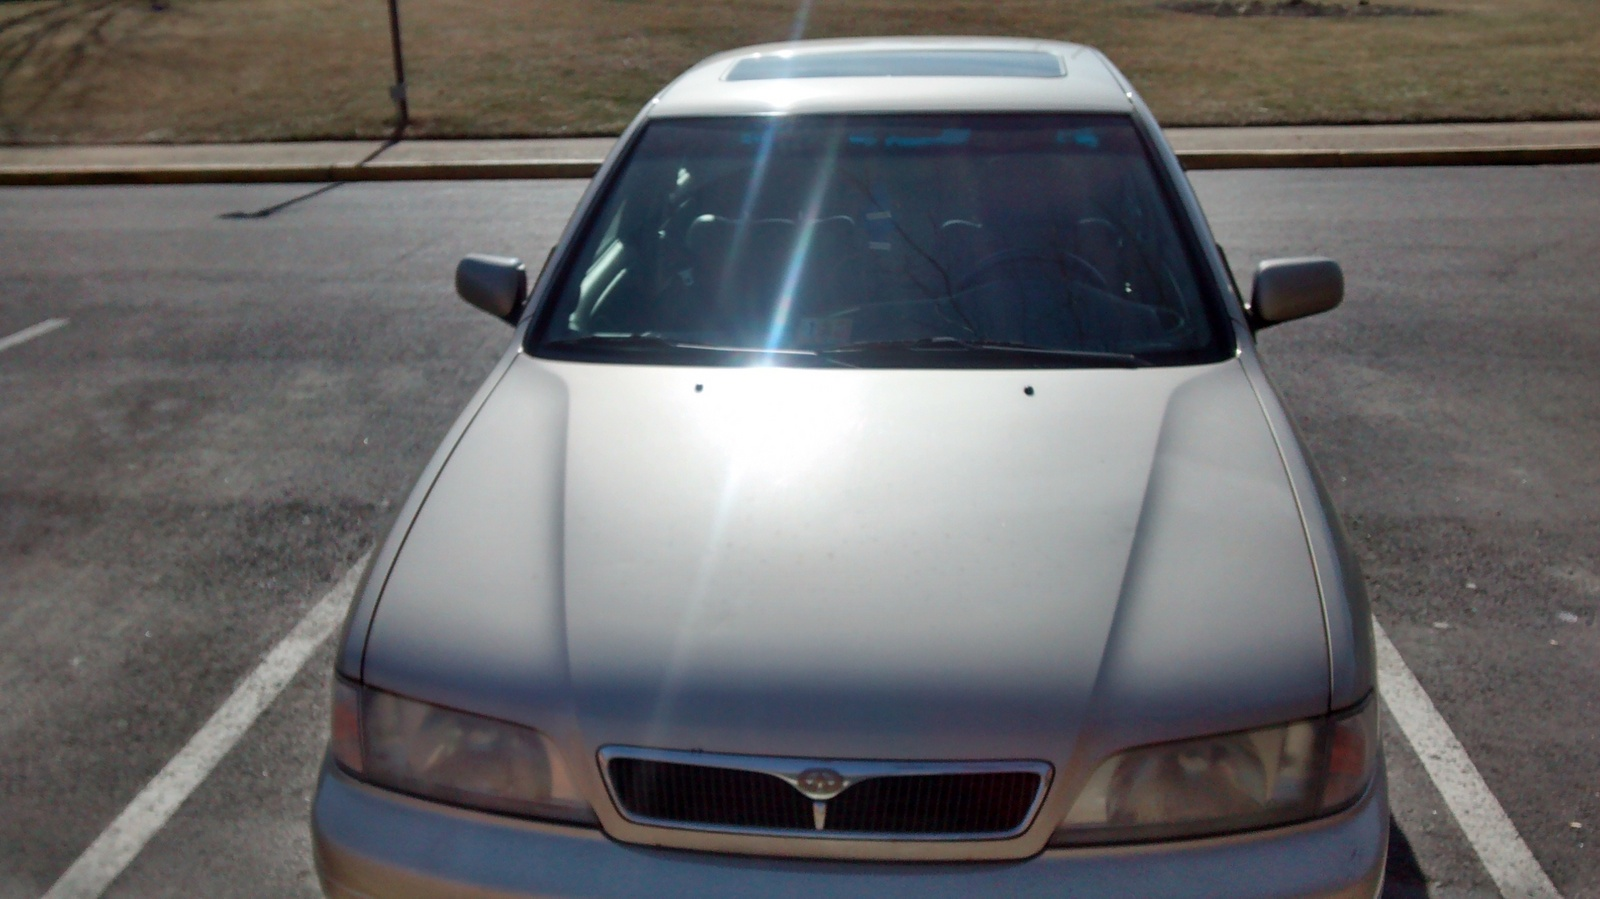 Picture of 2000 Infiniti G20 4 Dr Touring Sedan